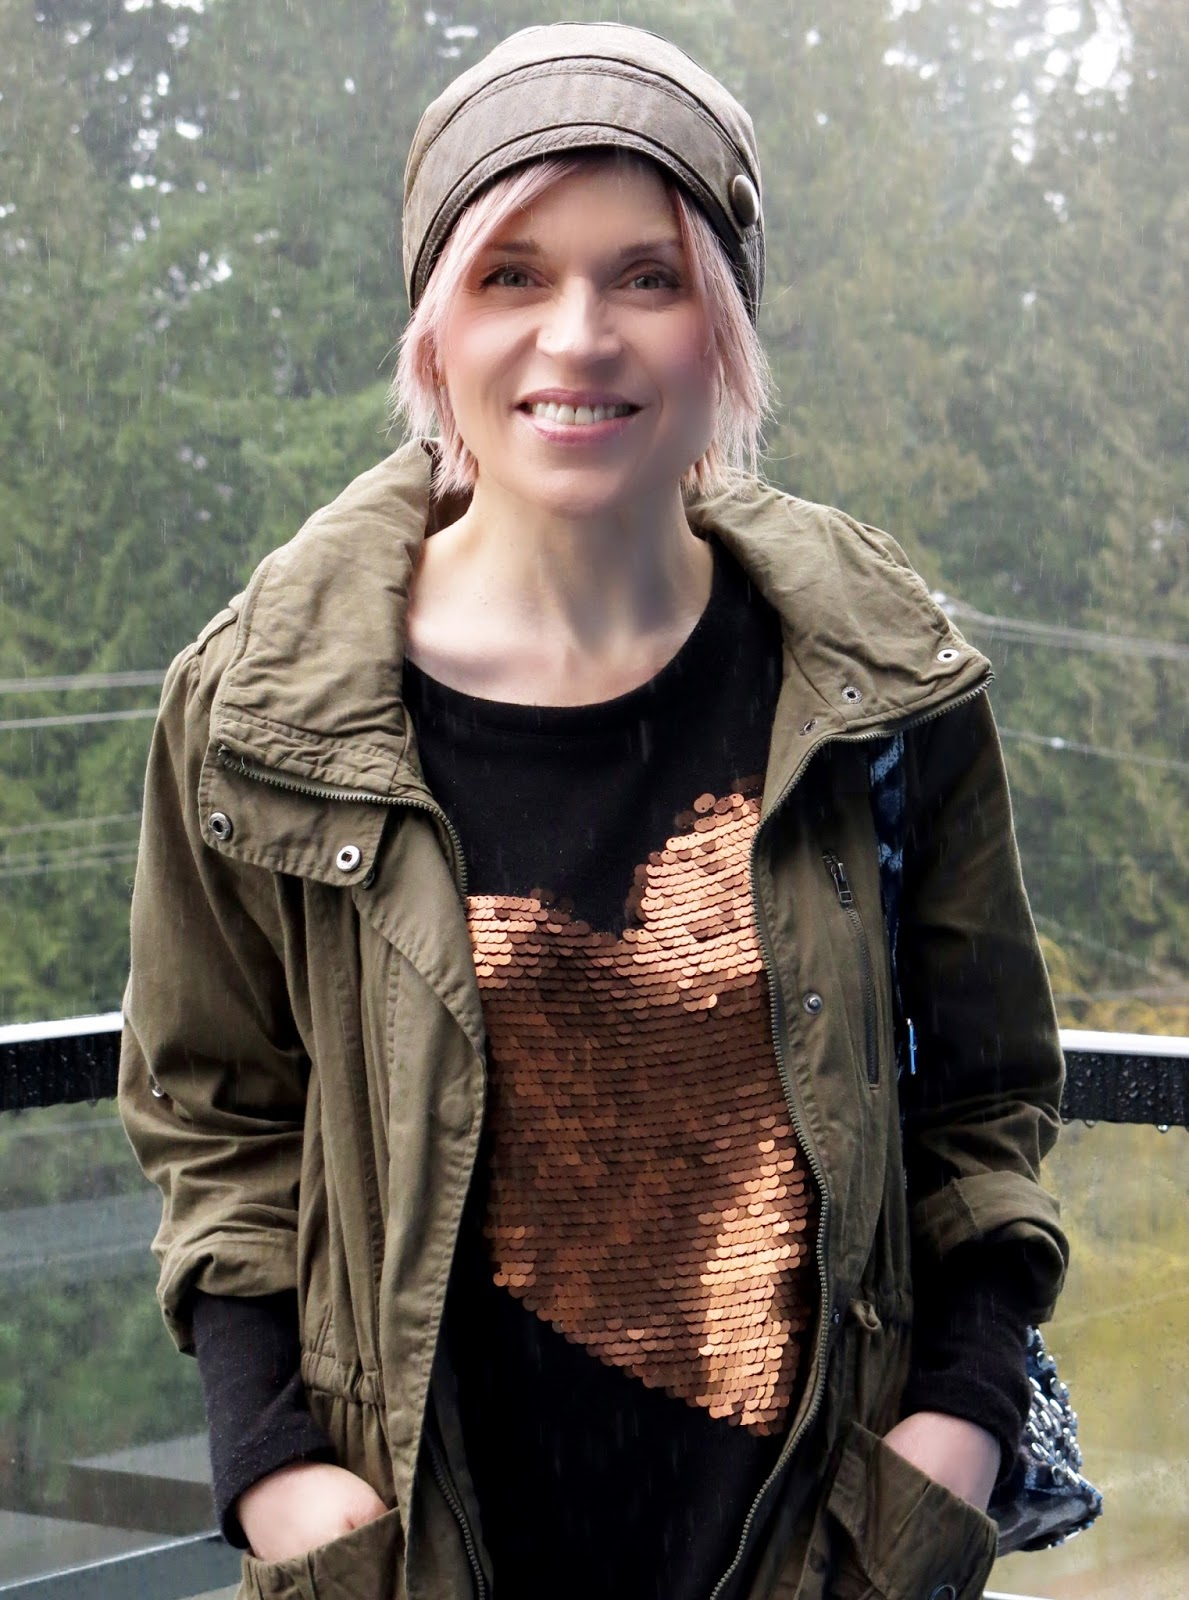 sequinned sweater, army parka, and leather beanie